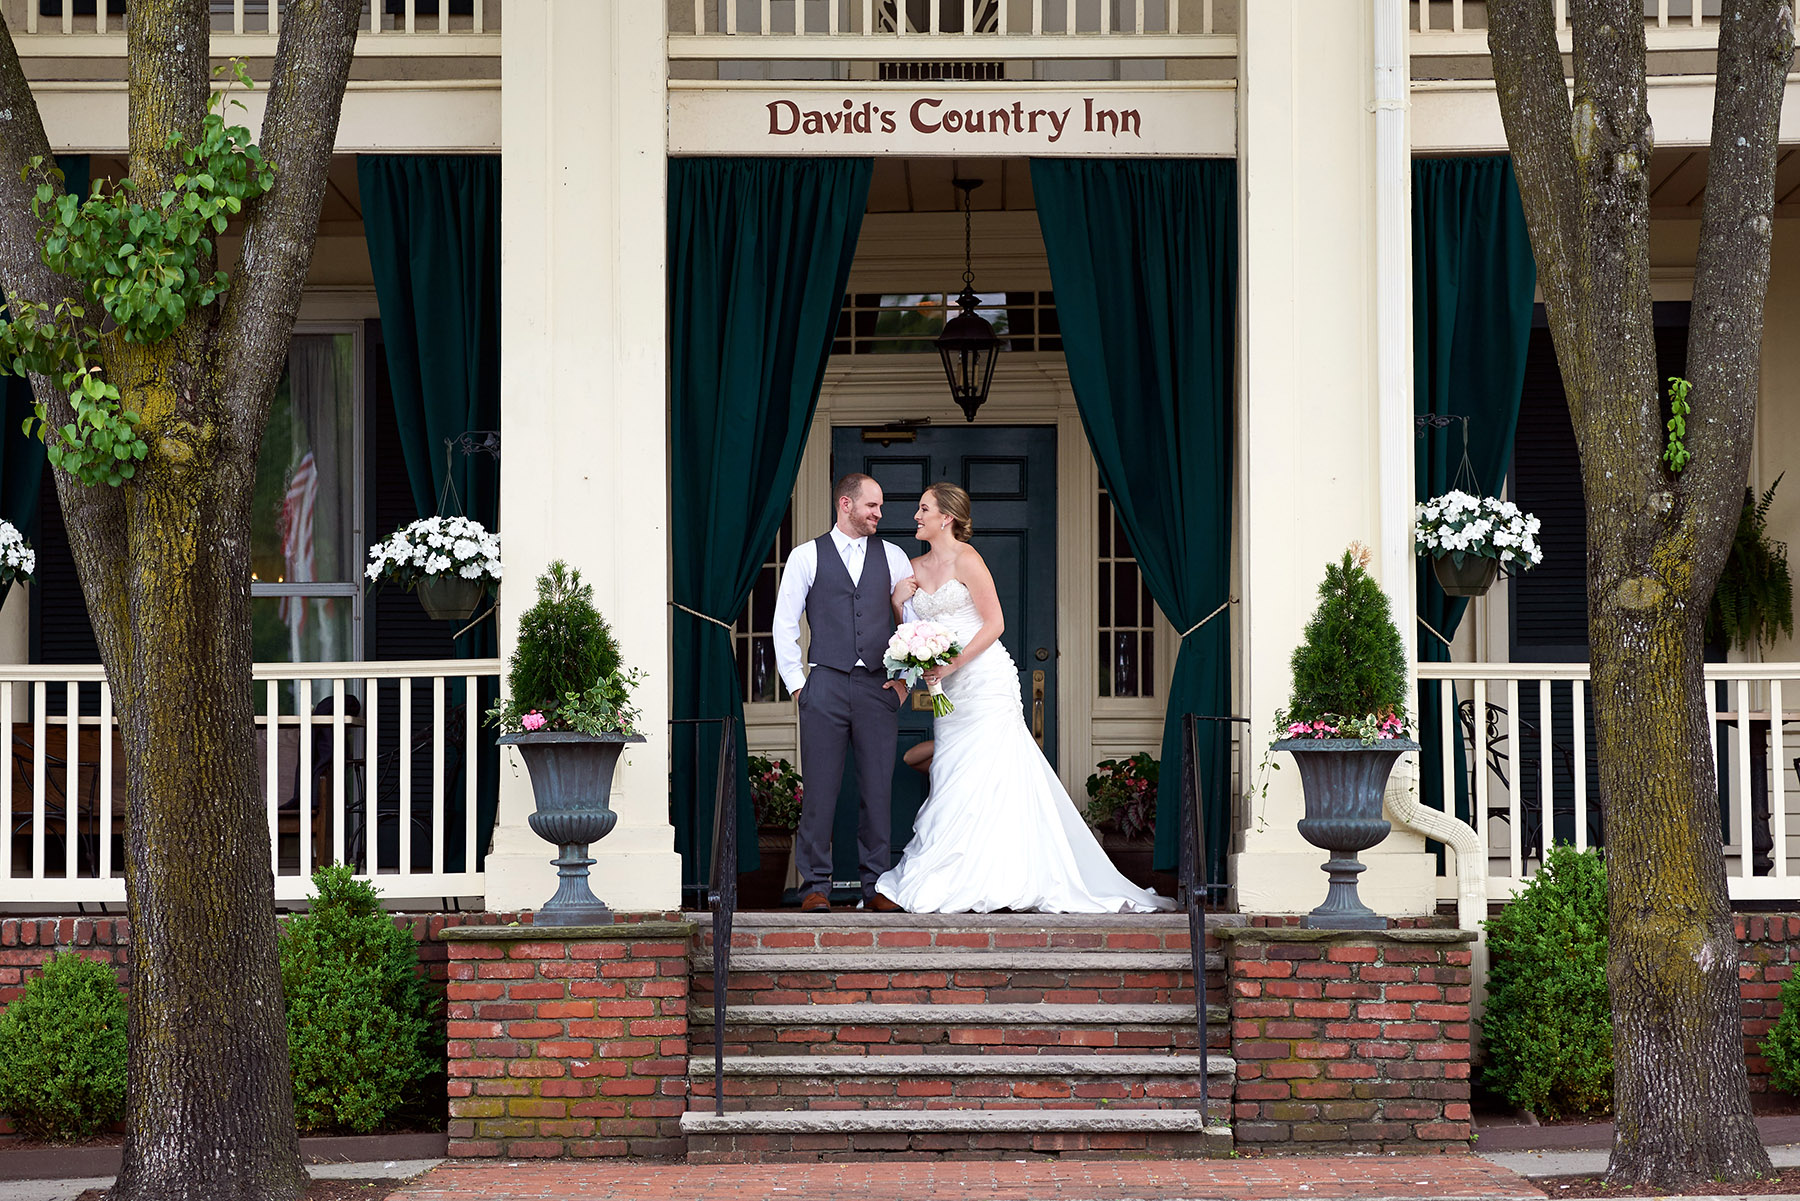 Davids Country Inn wedding photos